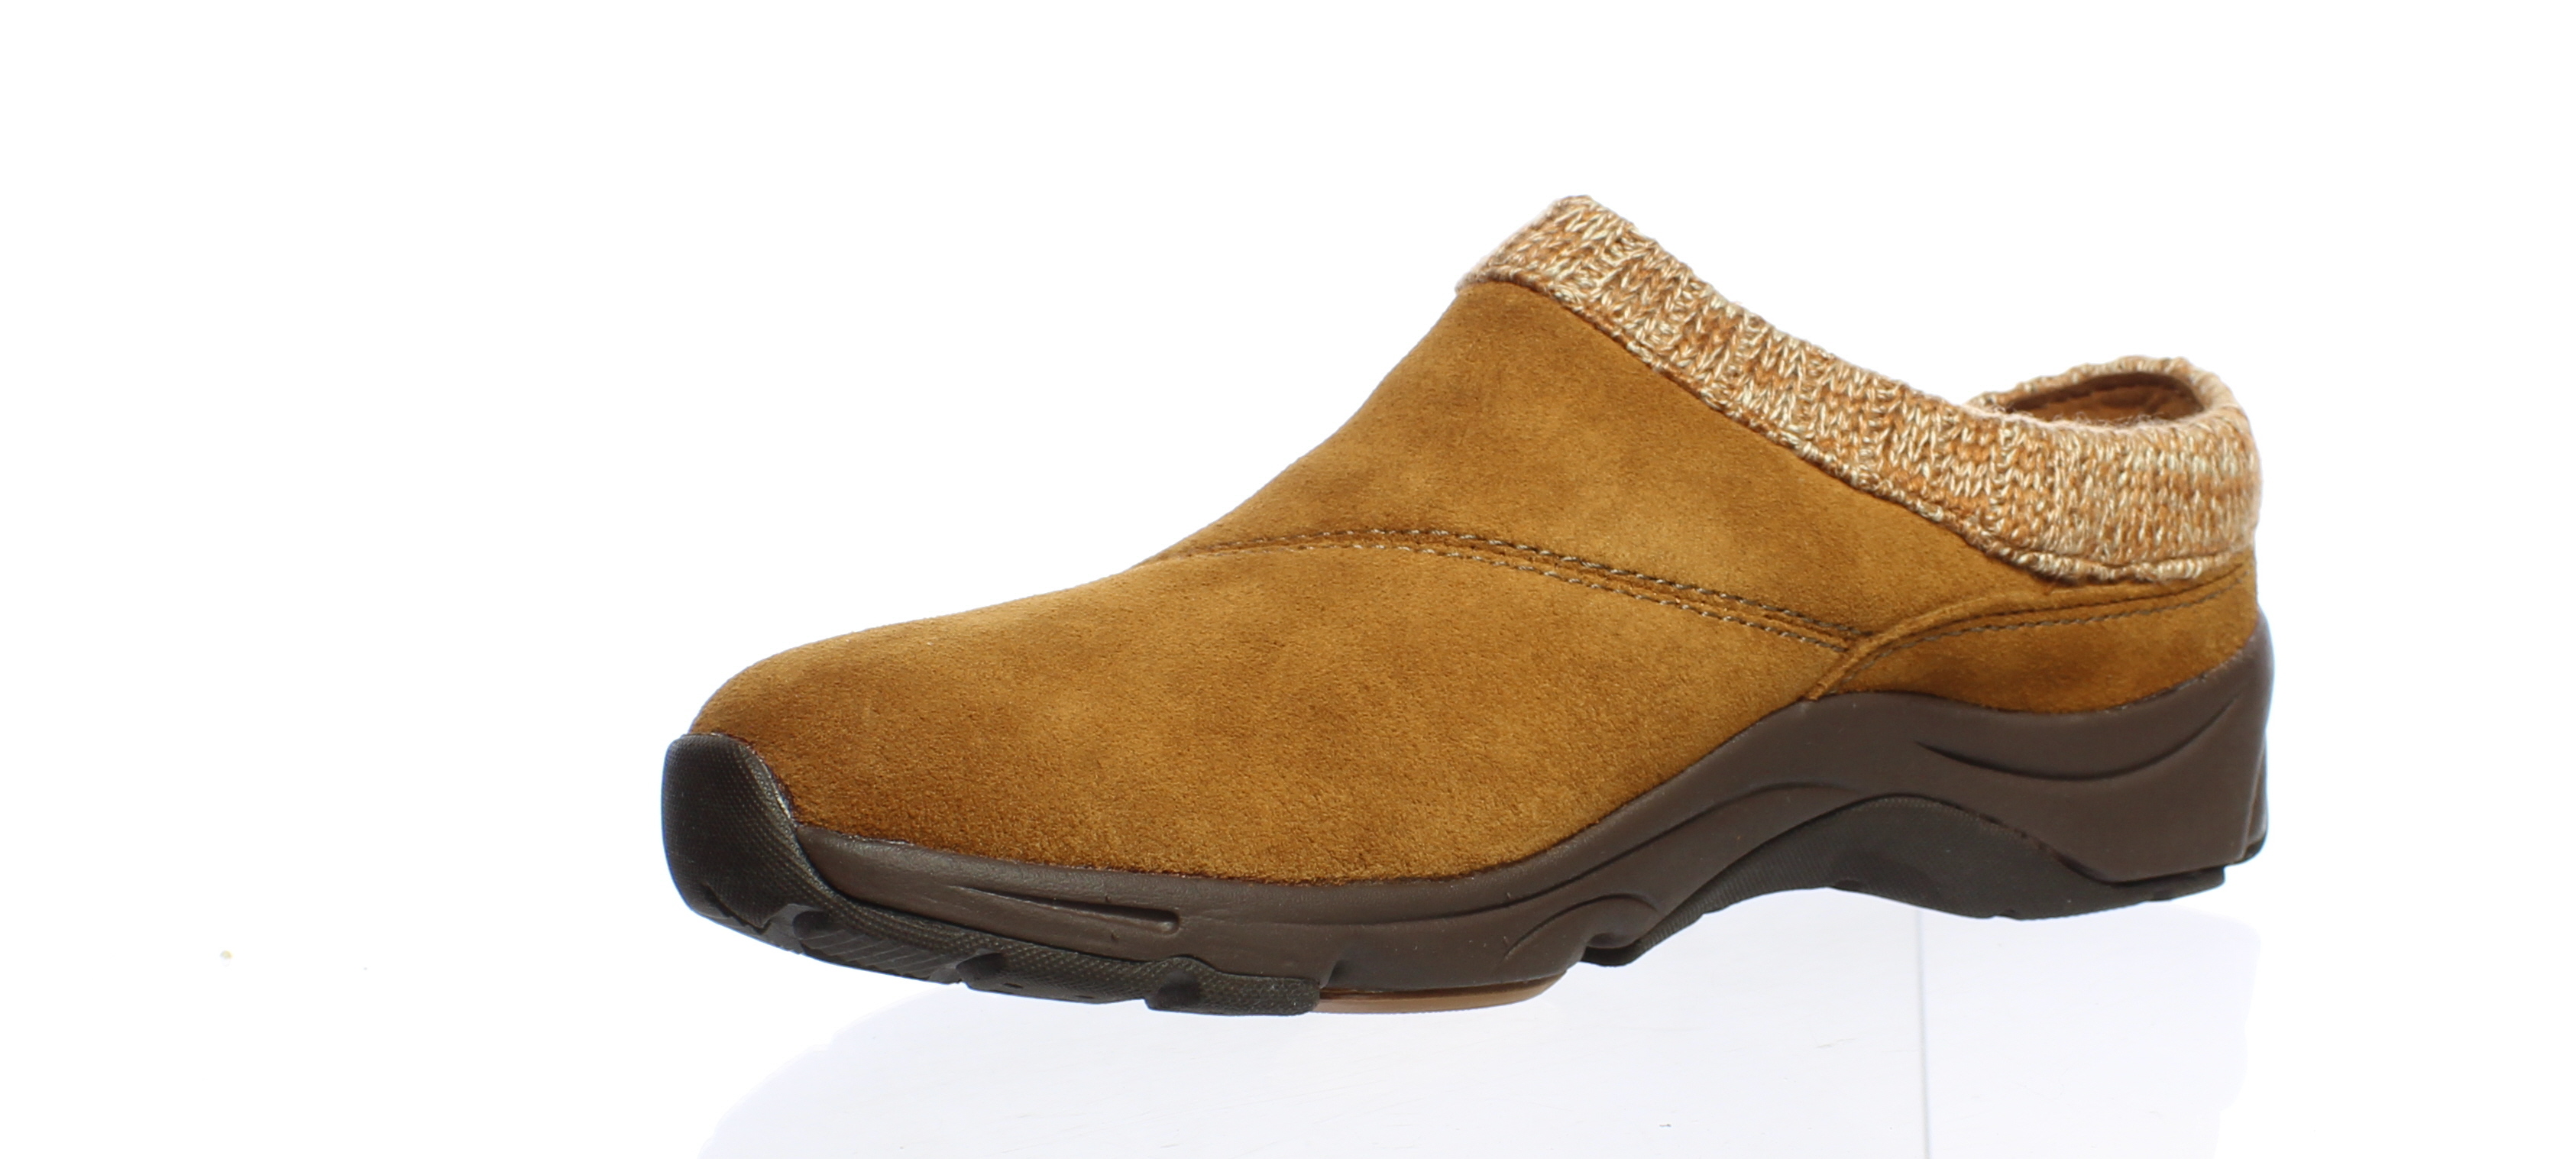 Vionic-Womens-Action-Arbor-Suede-Leather-Casual-Comfort-Clogs thumbnail 22